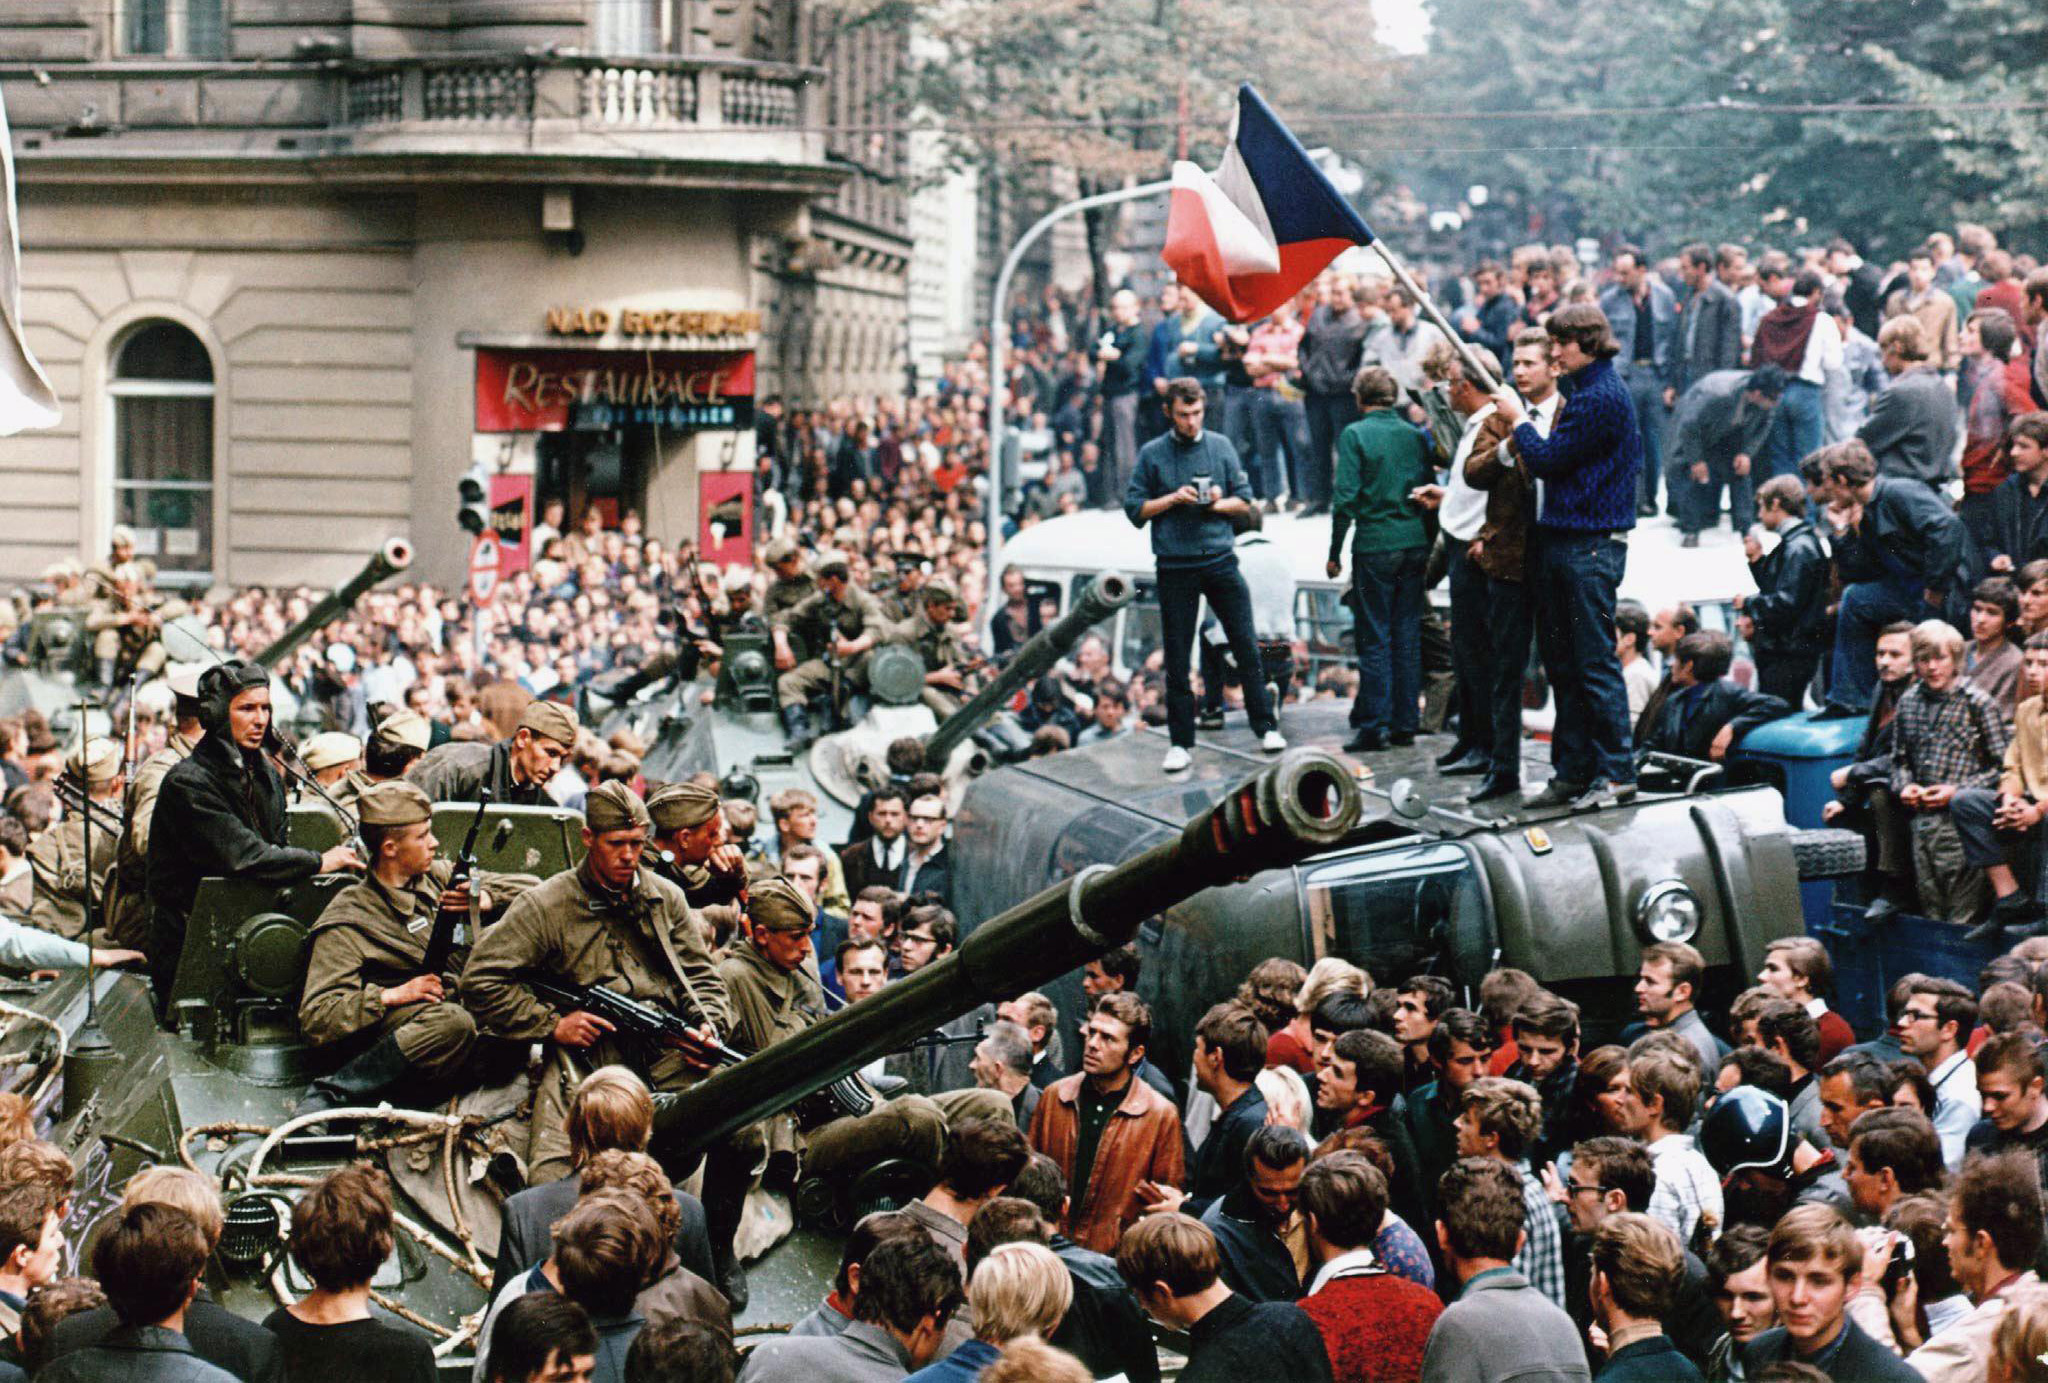 PRAGUE, CZECH REPUBLIC - AUGUST 21:  Czech youngsters holding a Czechoslovak flag stand atop an overturned truck as other Prague residents surround Soviet tanks in  Prague on 21 August 1968 as the Soviet-led invasion by the Warsaw Pact armies crushed the so called Prague Spring reform in former Czechoslovakia.  (Photo credit should read LIBOR HAJSKY/AFP/Getty Images)